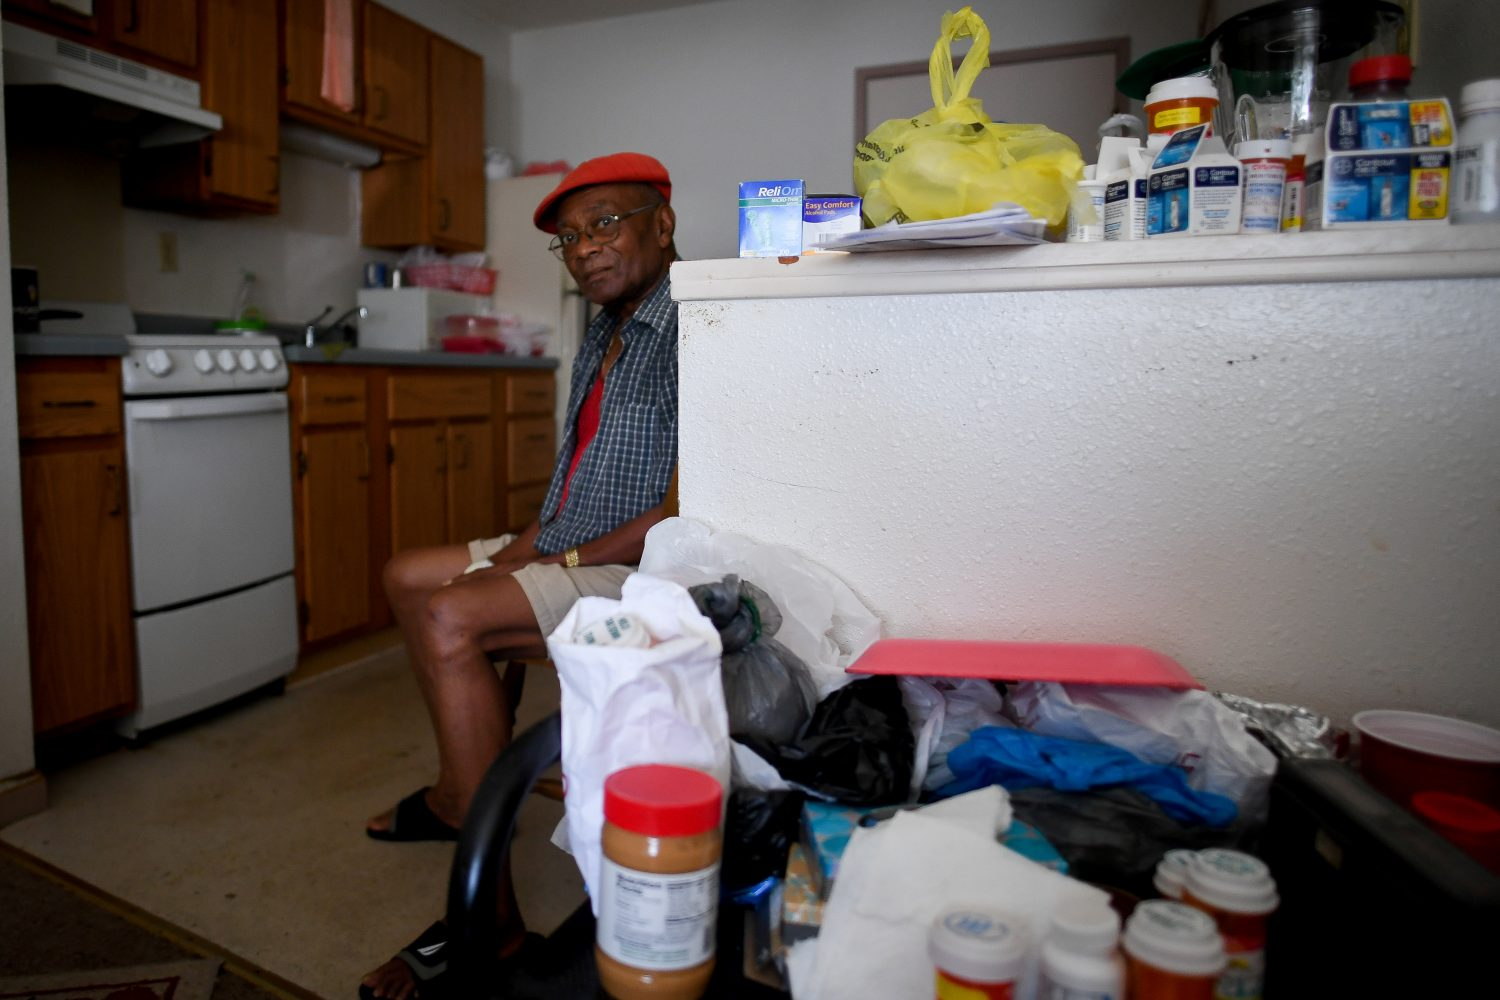 FILE PHOTO: Two days after Hurricane Irma, William James, 83, sits without power, food or water, in his room at Cypress Run, an assisted living facility, in Immokalee, Florida, U.S., September 12, 2017. REUTERS/Bryan Woolston/File Photo